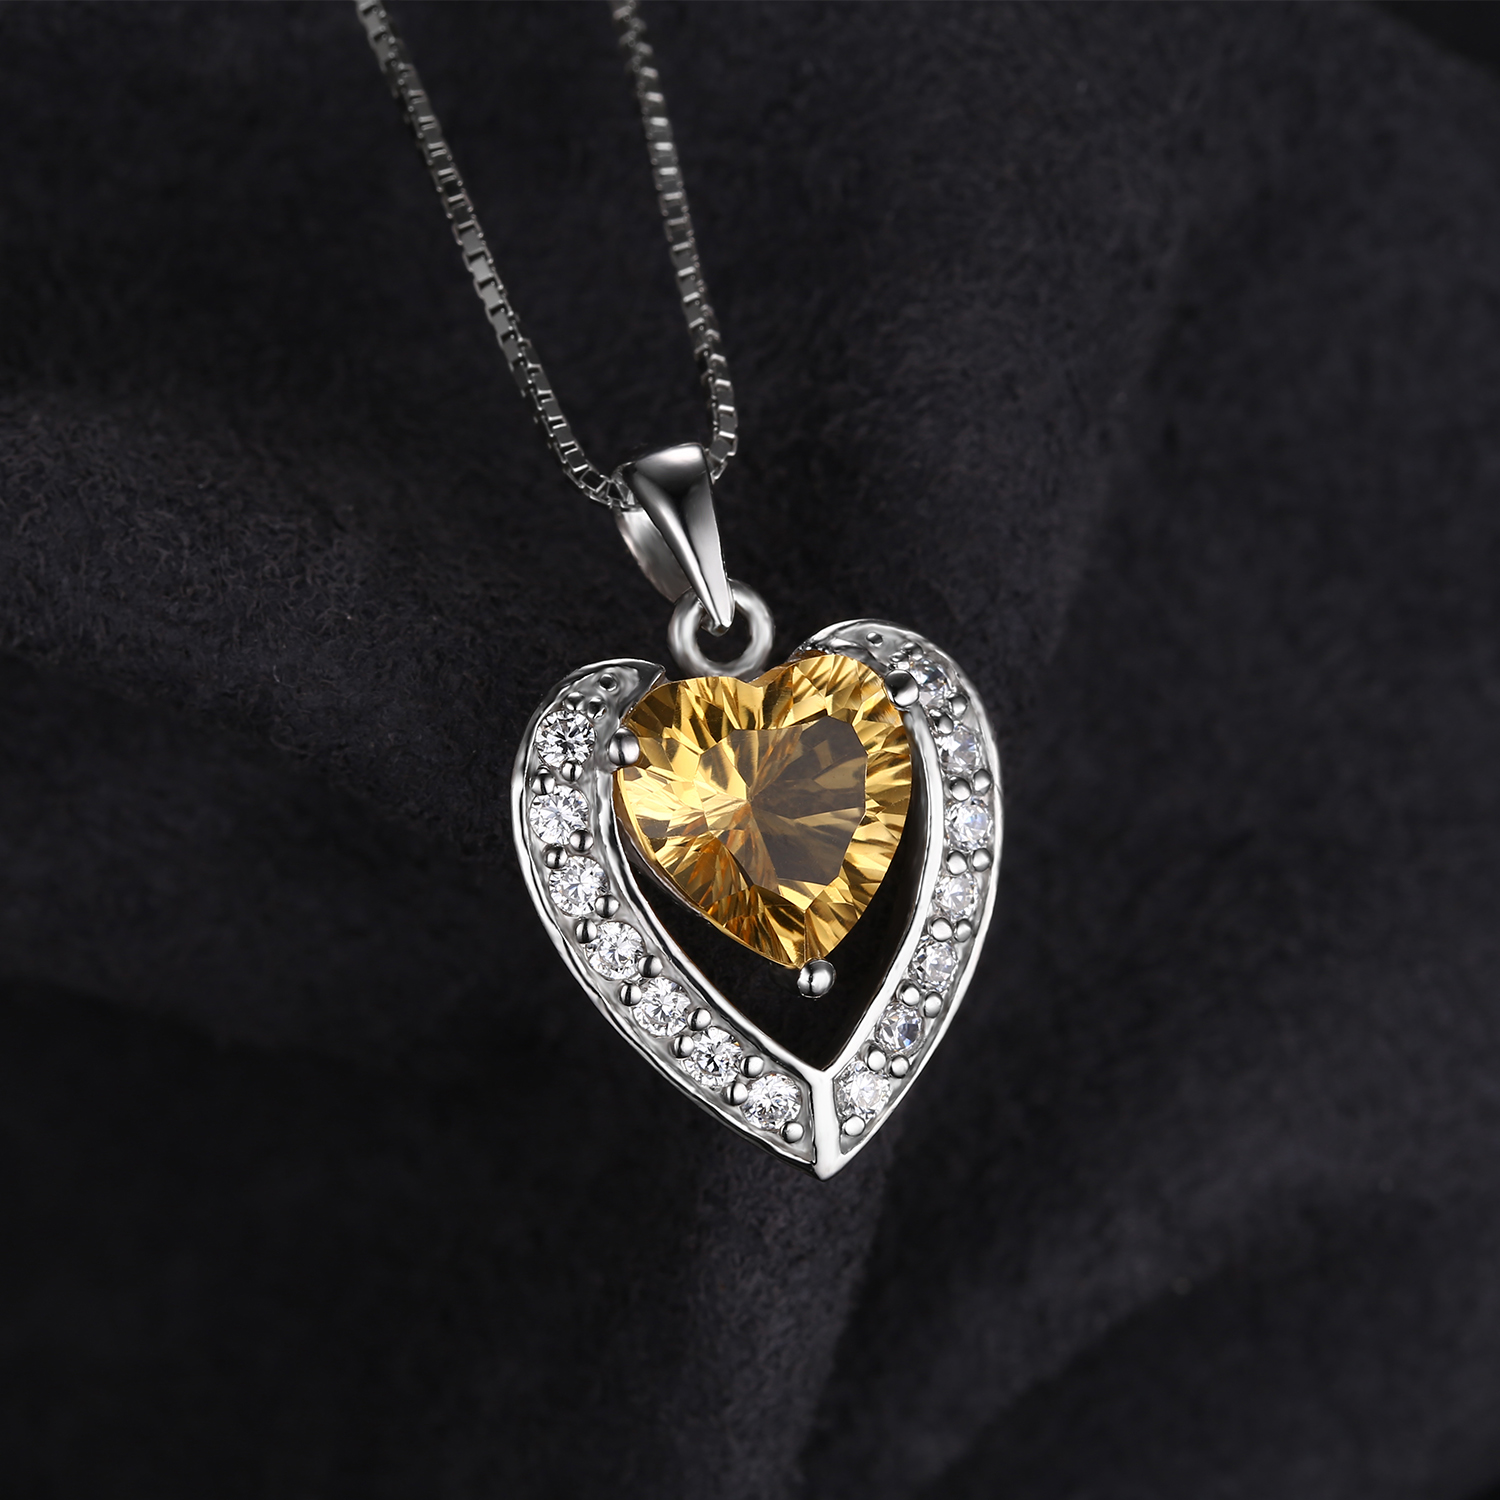 292 ct round yellow citrine heart pendant necklace 925 sterling 2 92 ct round yellow citrine heart pendant mozeypictures Image collections